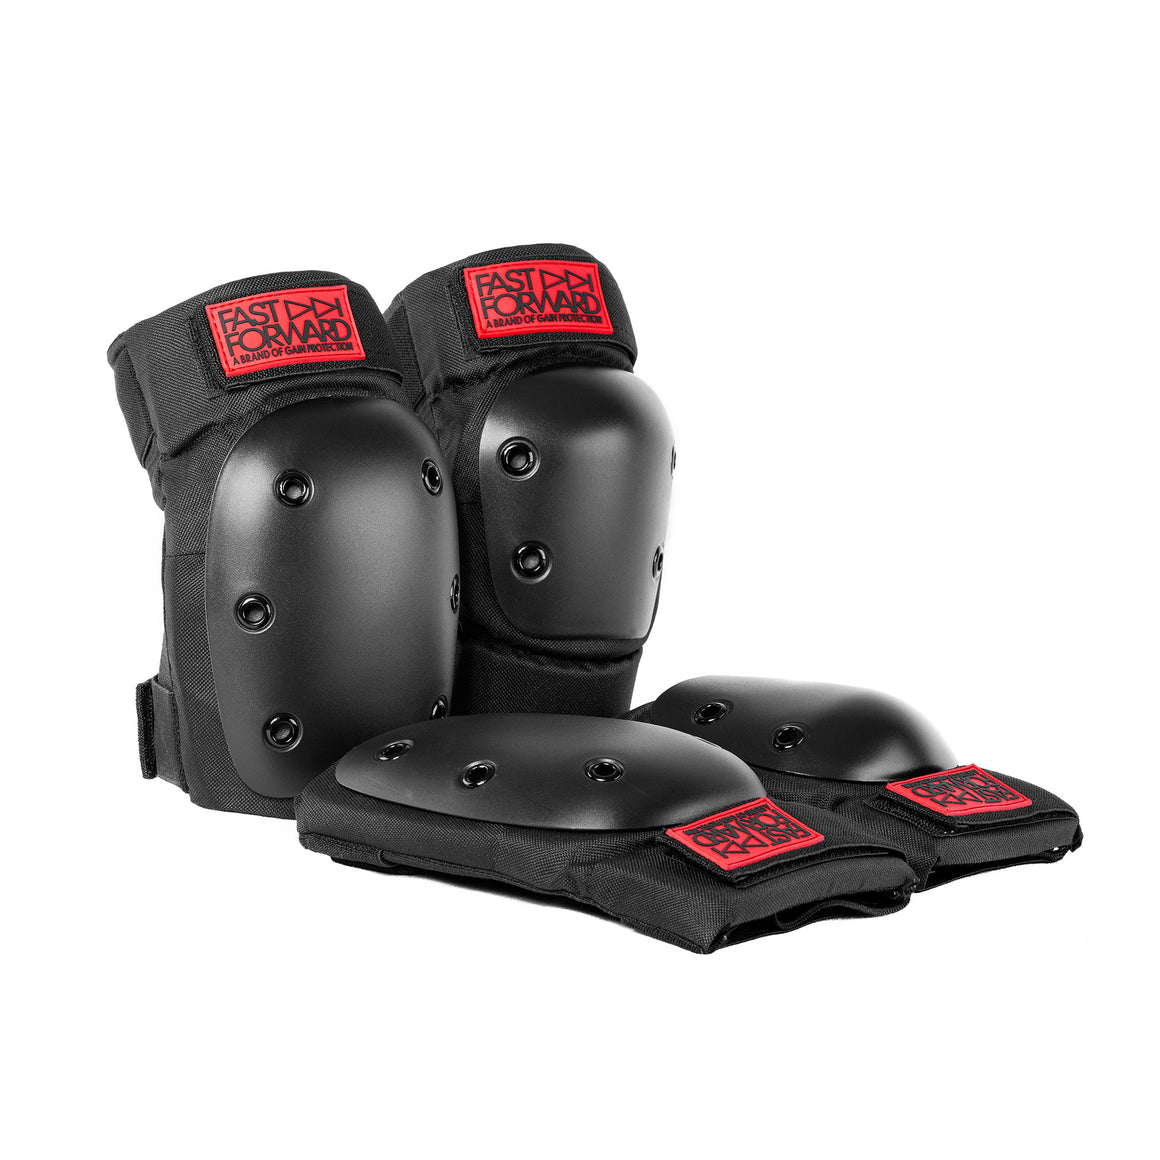 Fast Forward Rookie Knee/Elbow Pad Set